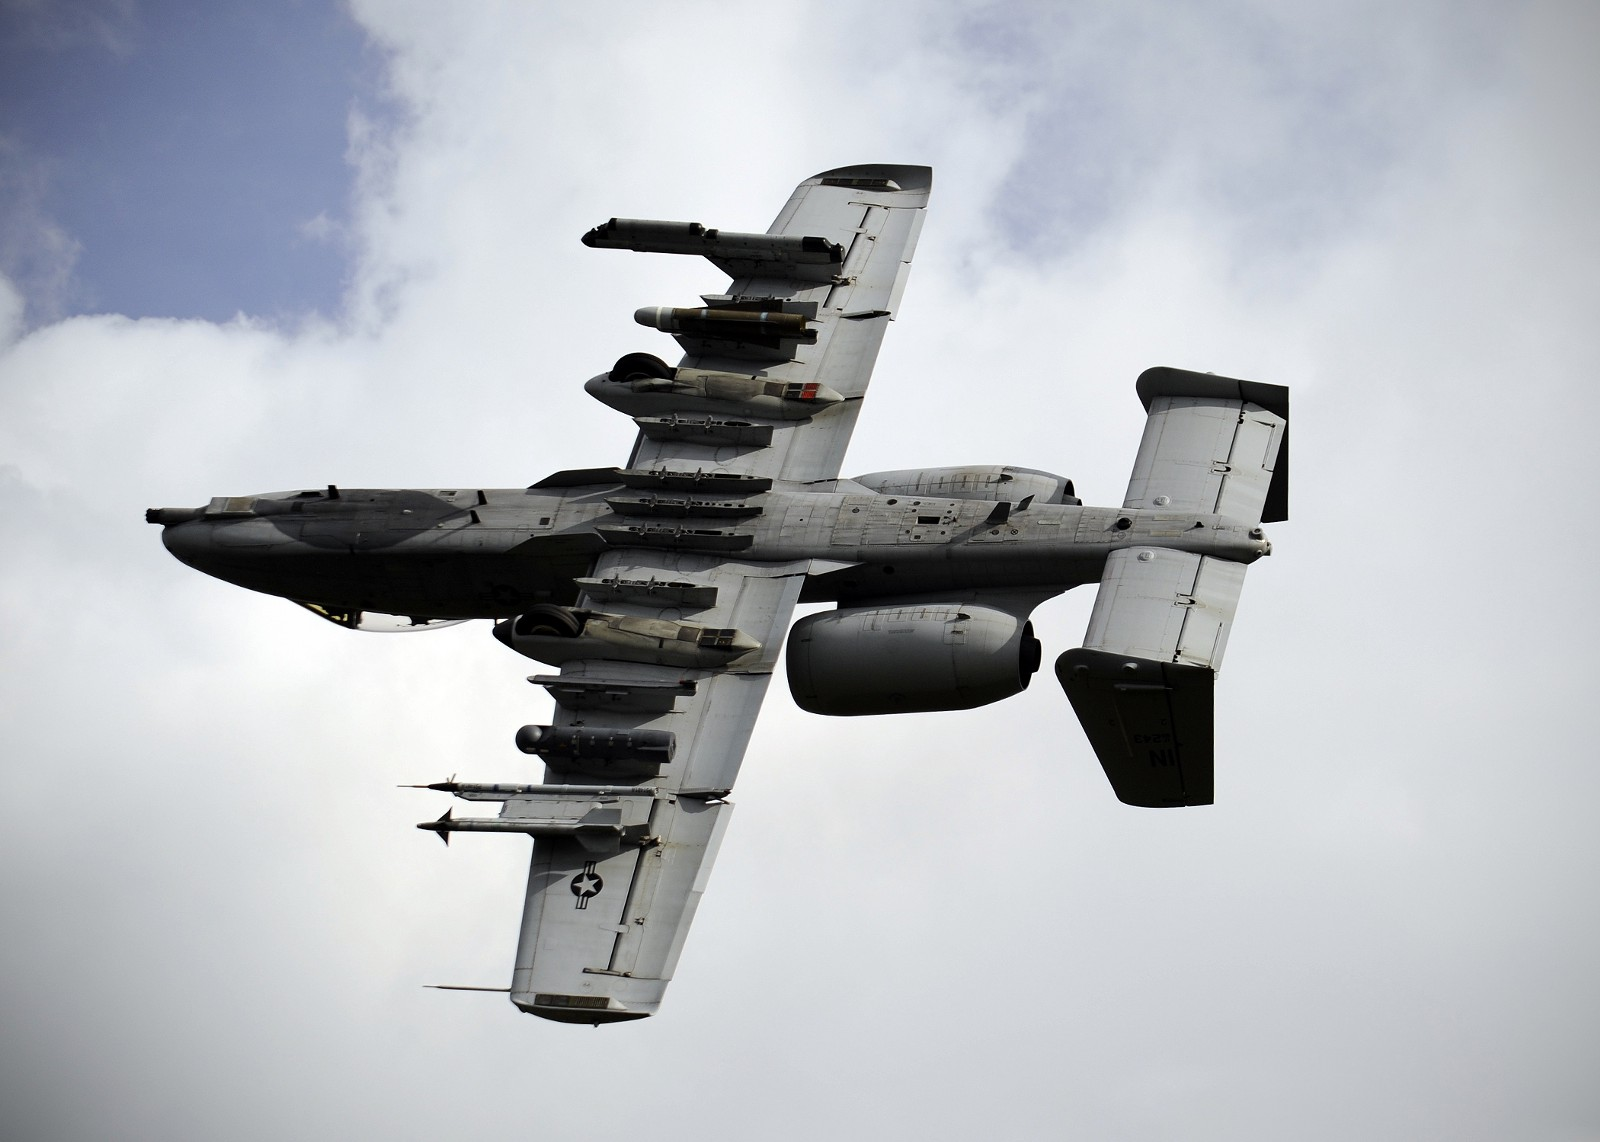 The venerable A-10 during a training exercise. Air Force photo